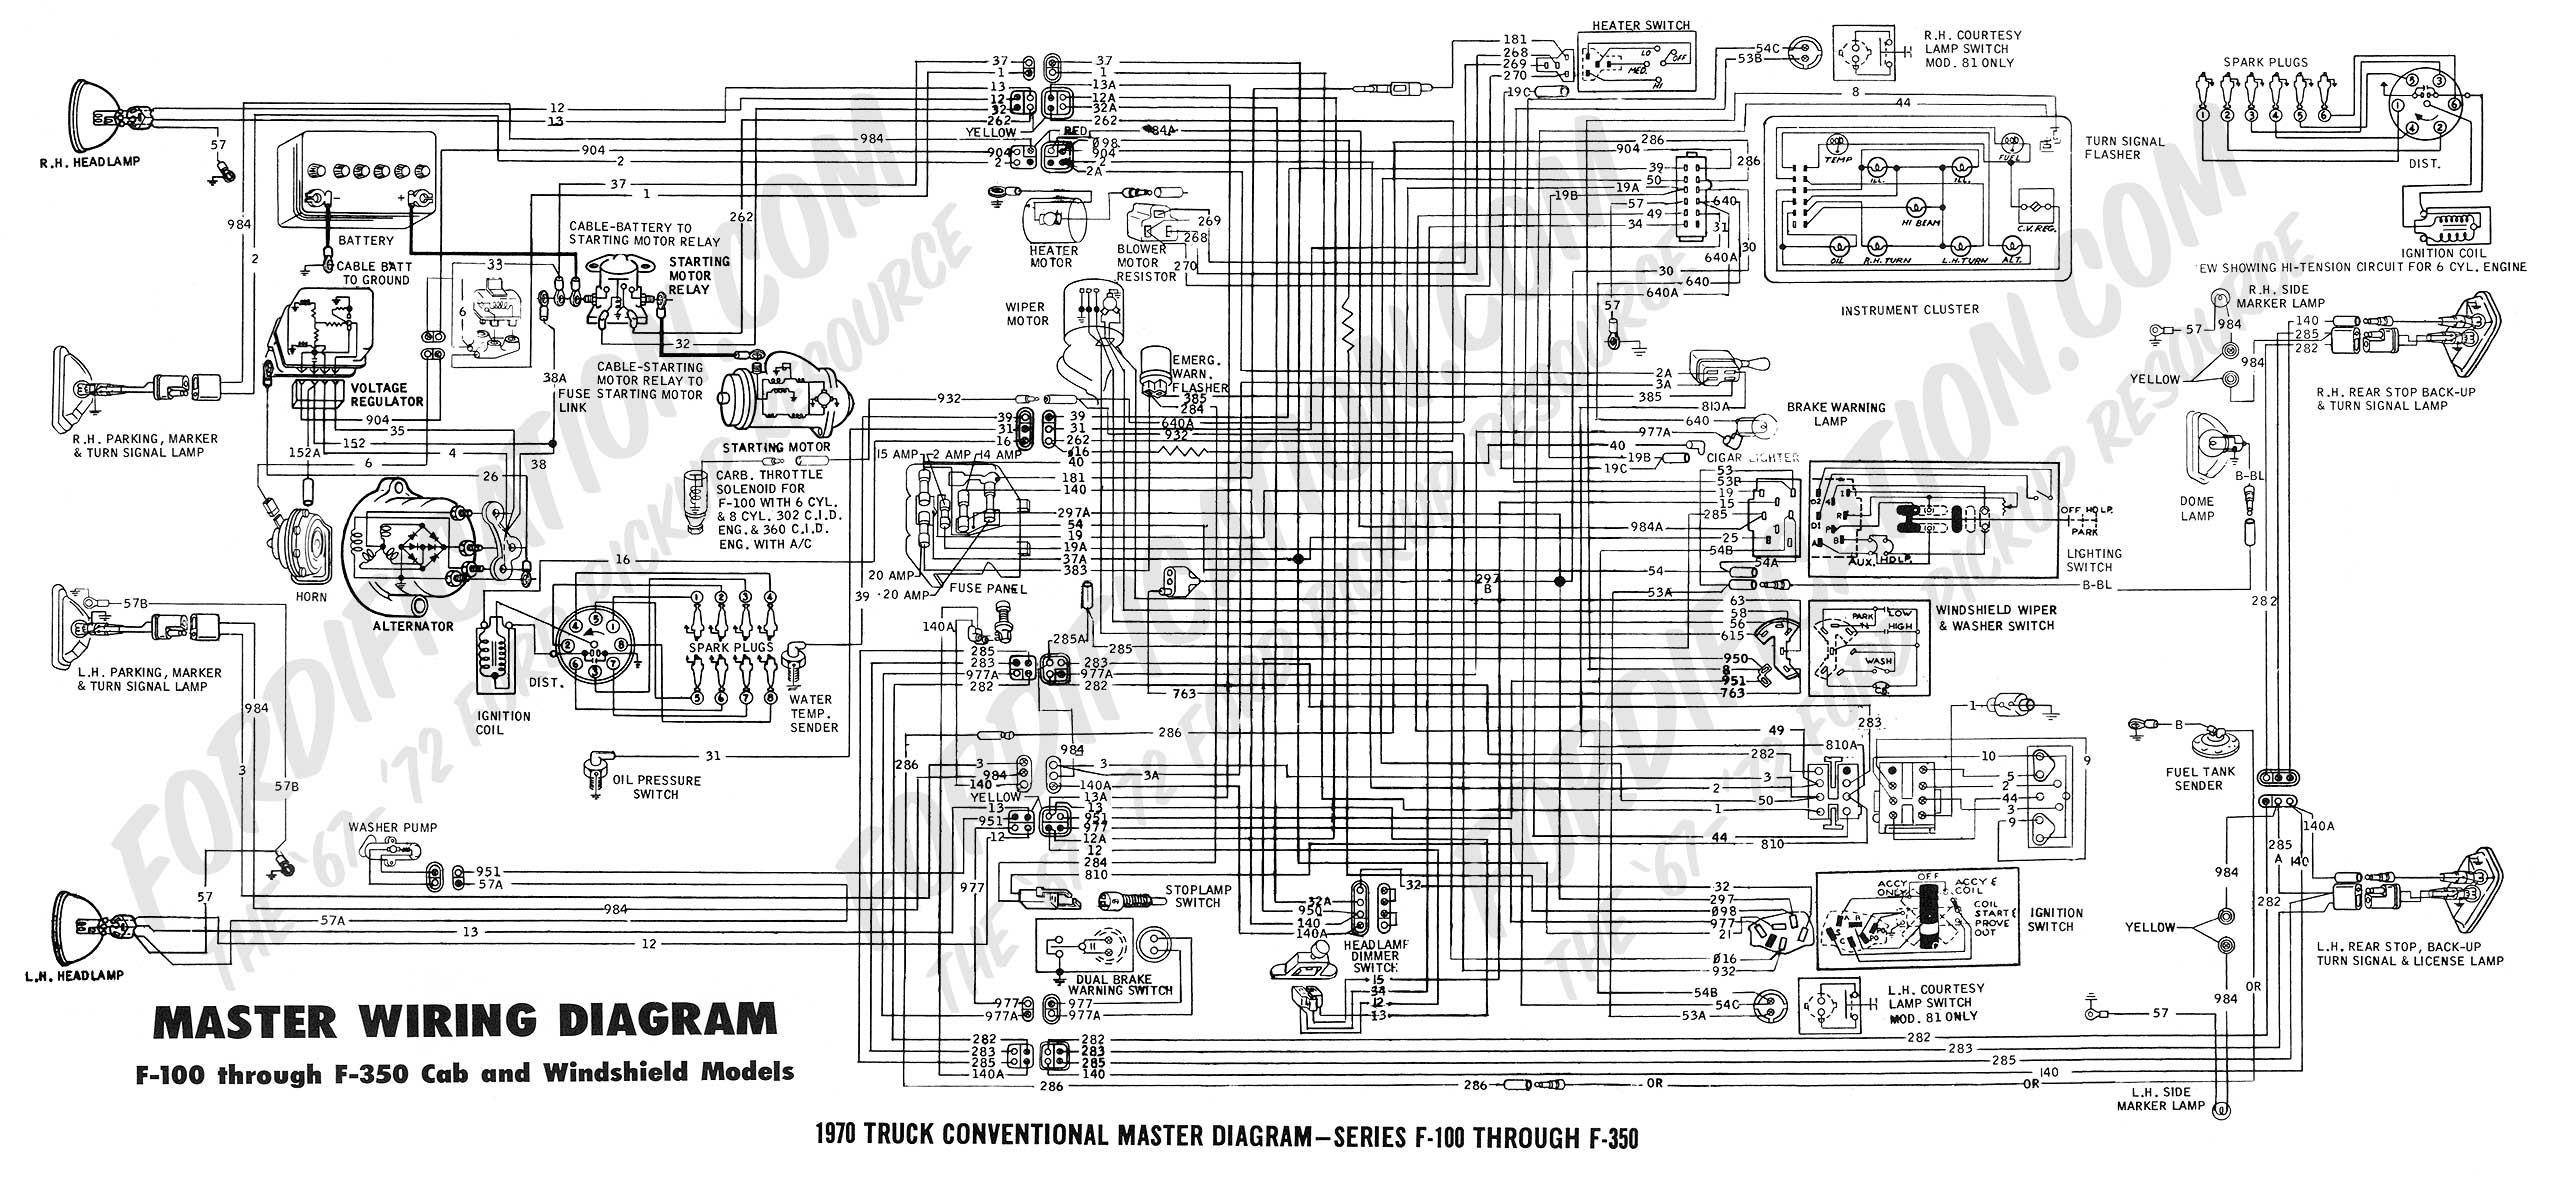 2003 F350 Wiring Diagram Basic Schematic Ford Expedition Radio F250 Source U2022 Fuse